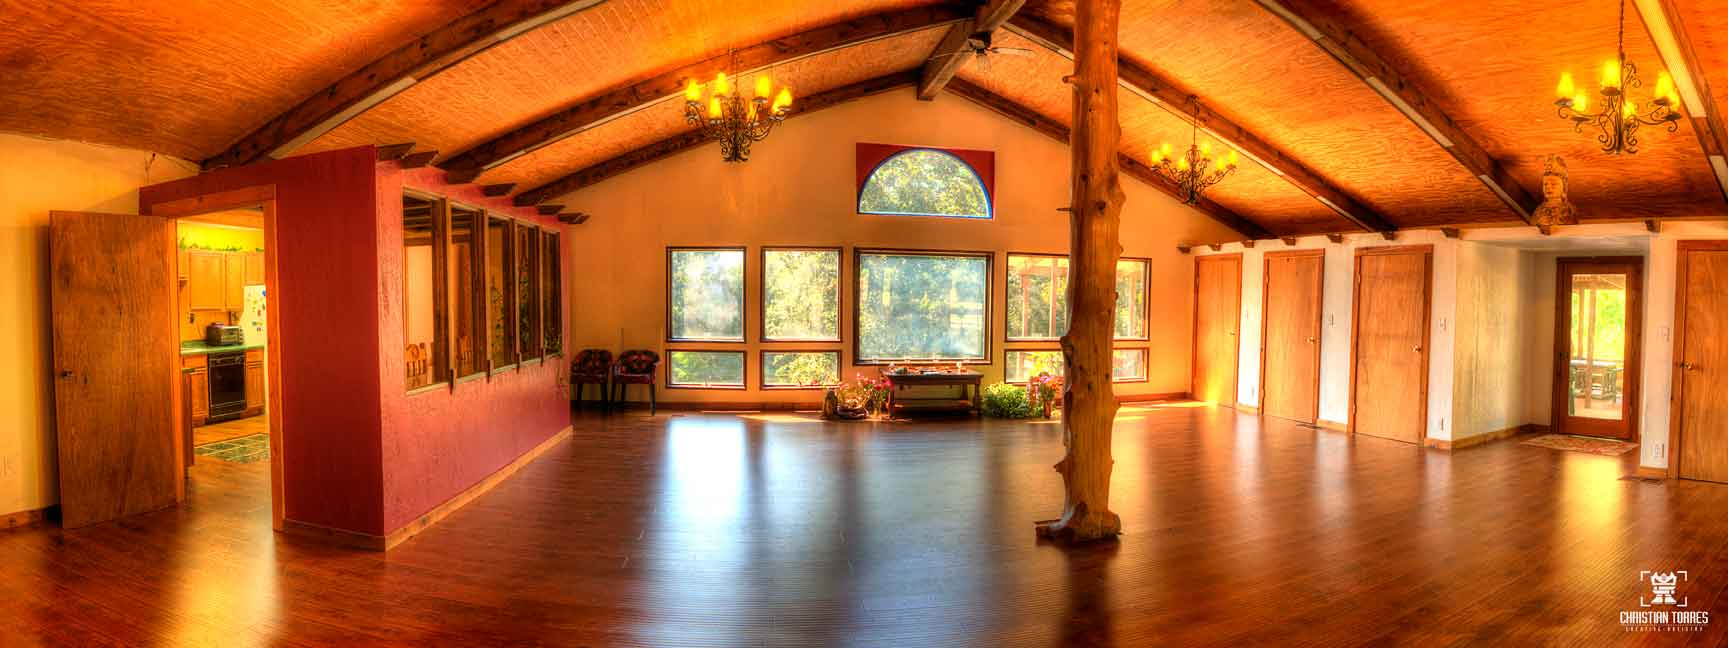 The Great Room at the Samadhi Retreat provides room for yoga, indoor camping on air mattresses, & discourse area during Samadhi Silent Retreats